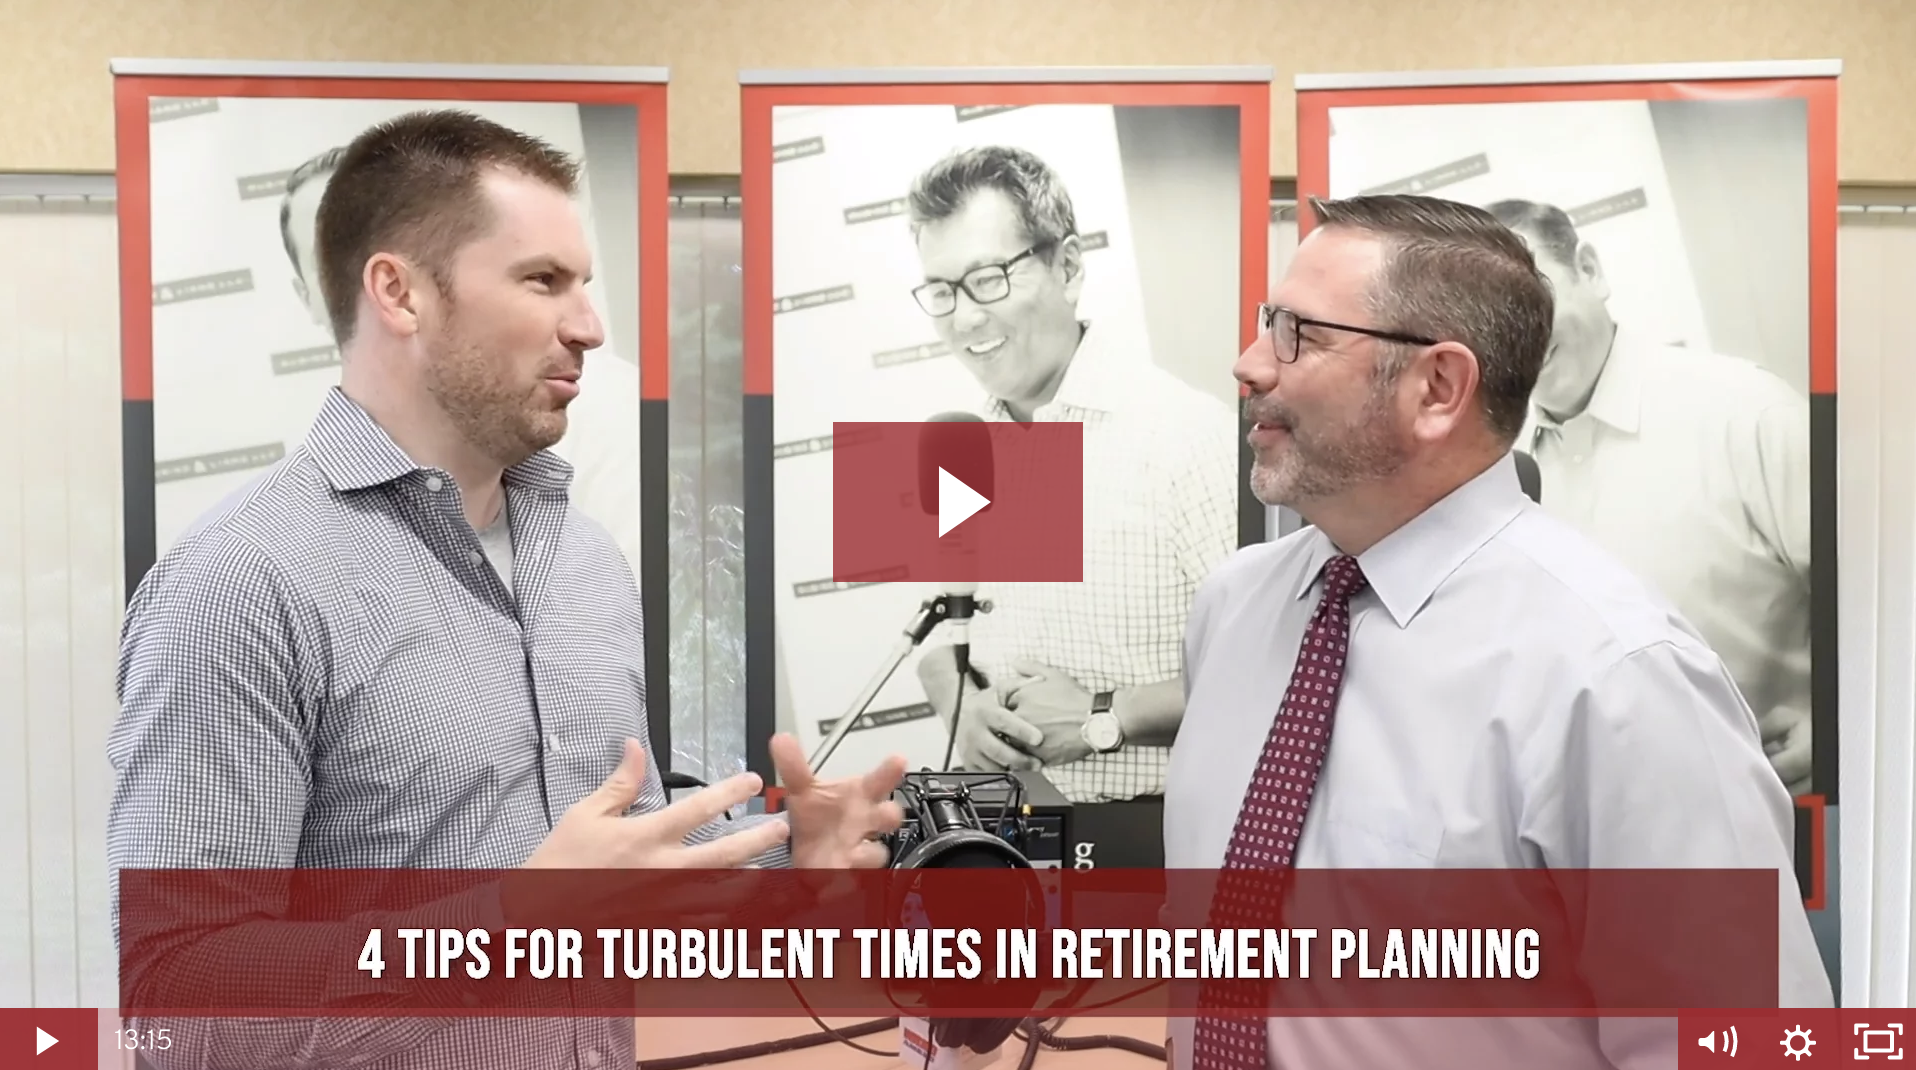 4 Tips For Turbulent Times In Retirement Planning